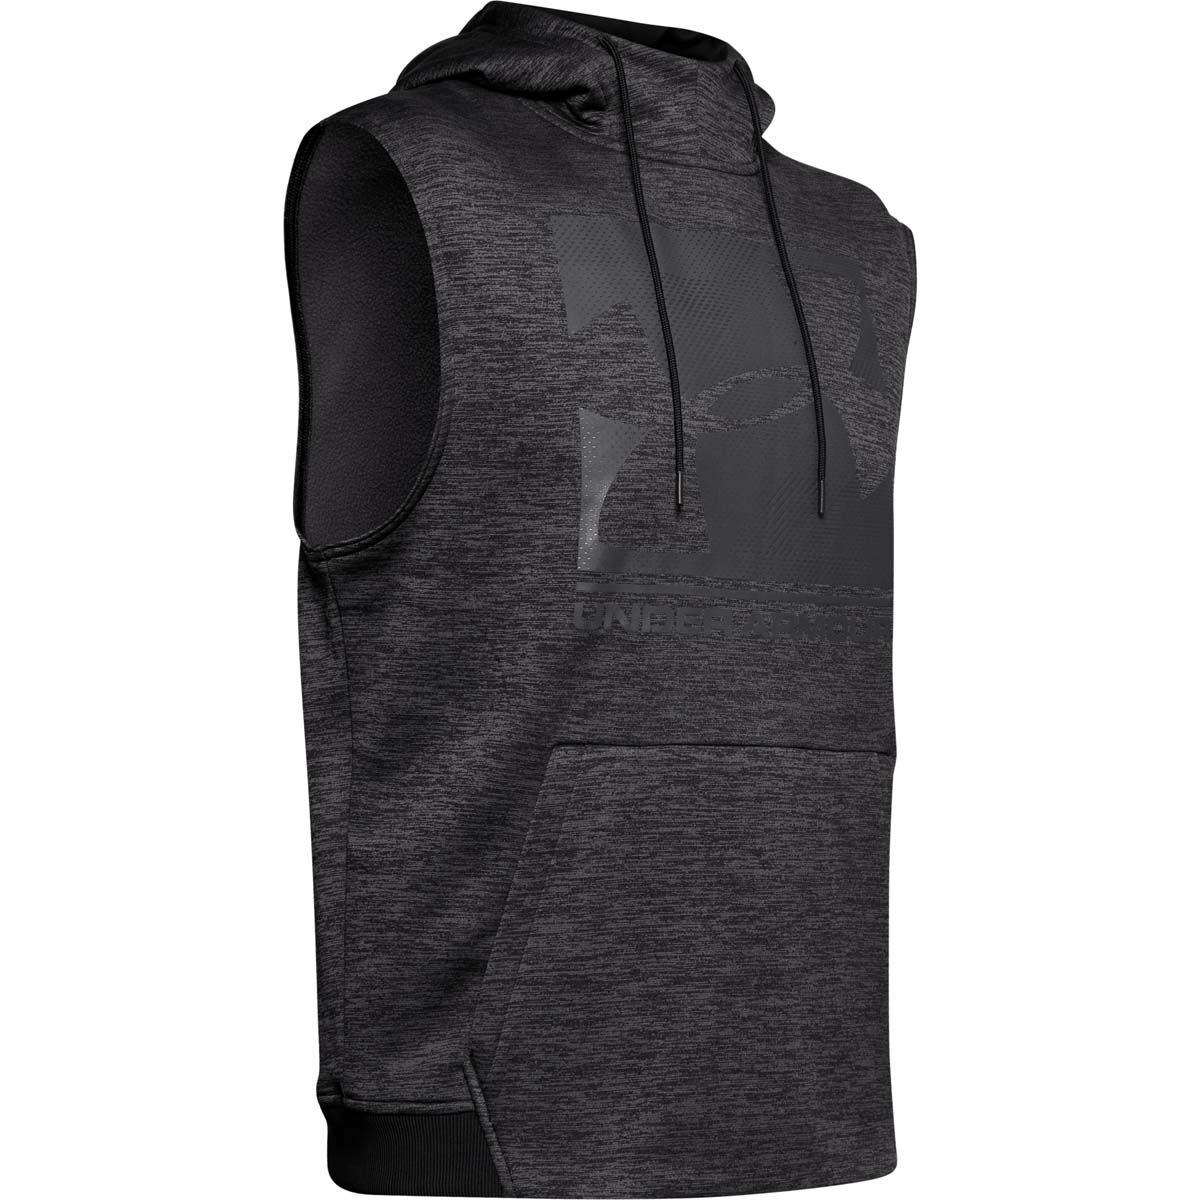 adidas USA Volleyball Sleeveless Hoodie Men's Volleyball